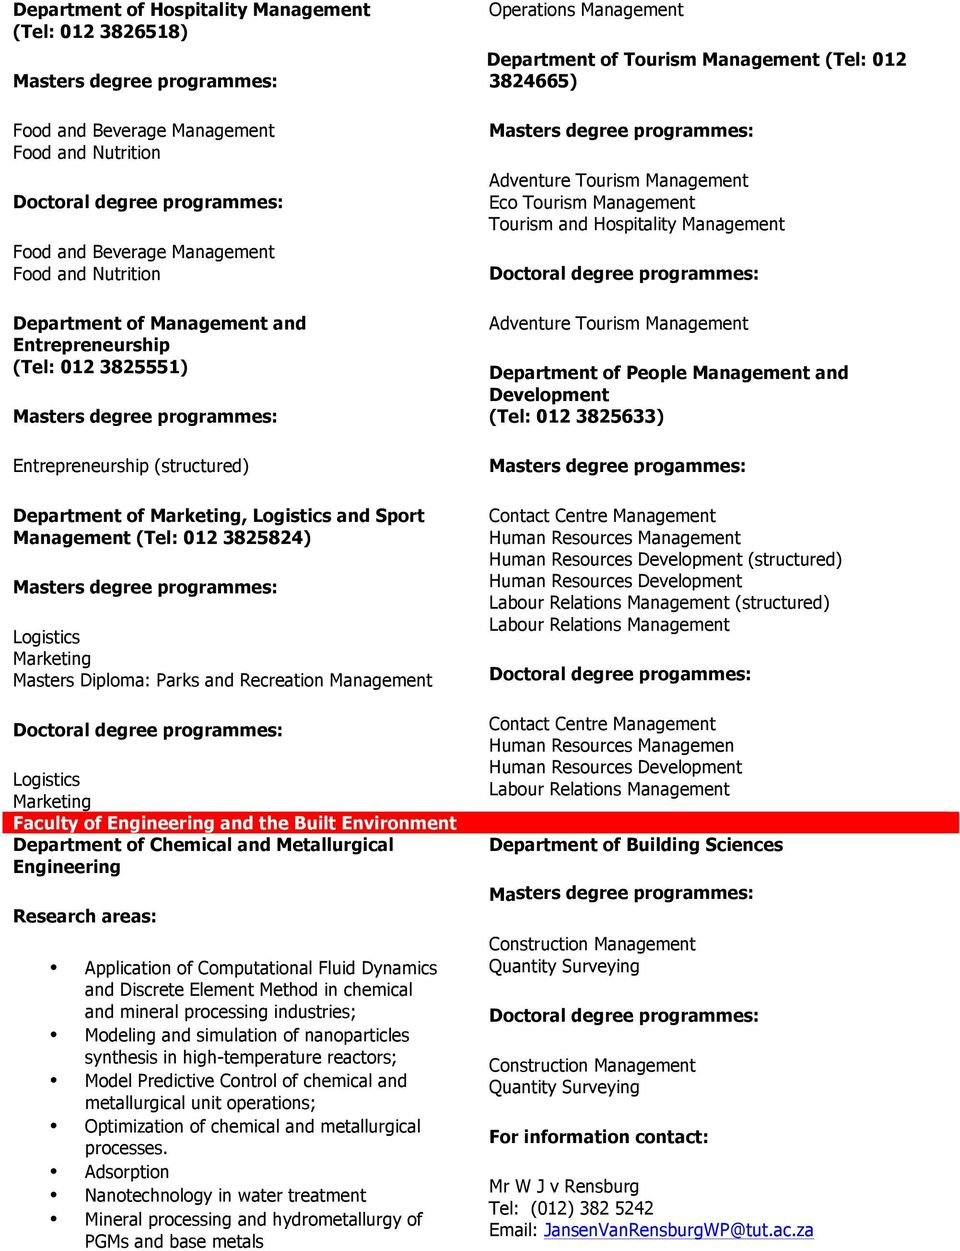 Logistics Marketing Faculty of Engineering and the Built Environment Department of Chemical and Metallurgical Engineering Research areas: Application of Computational Fluid Dynamics and Discrete